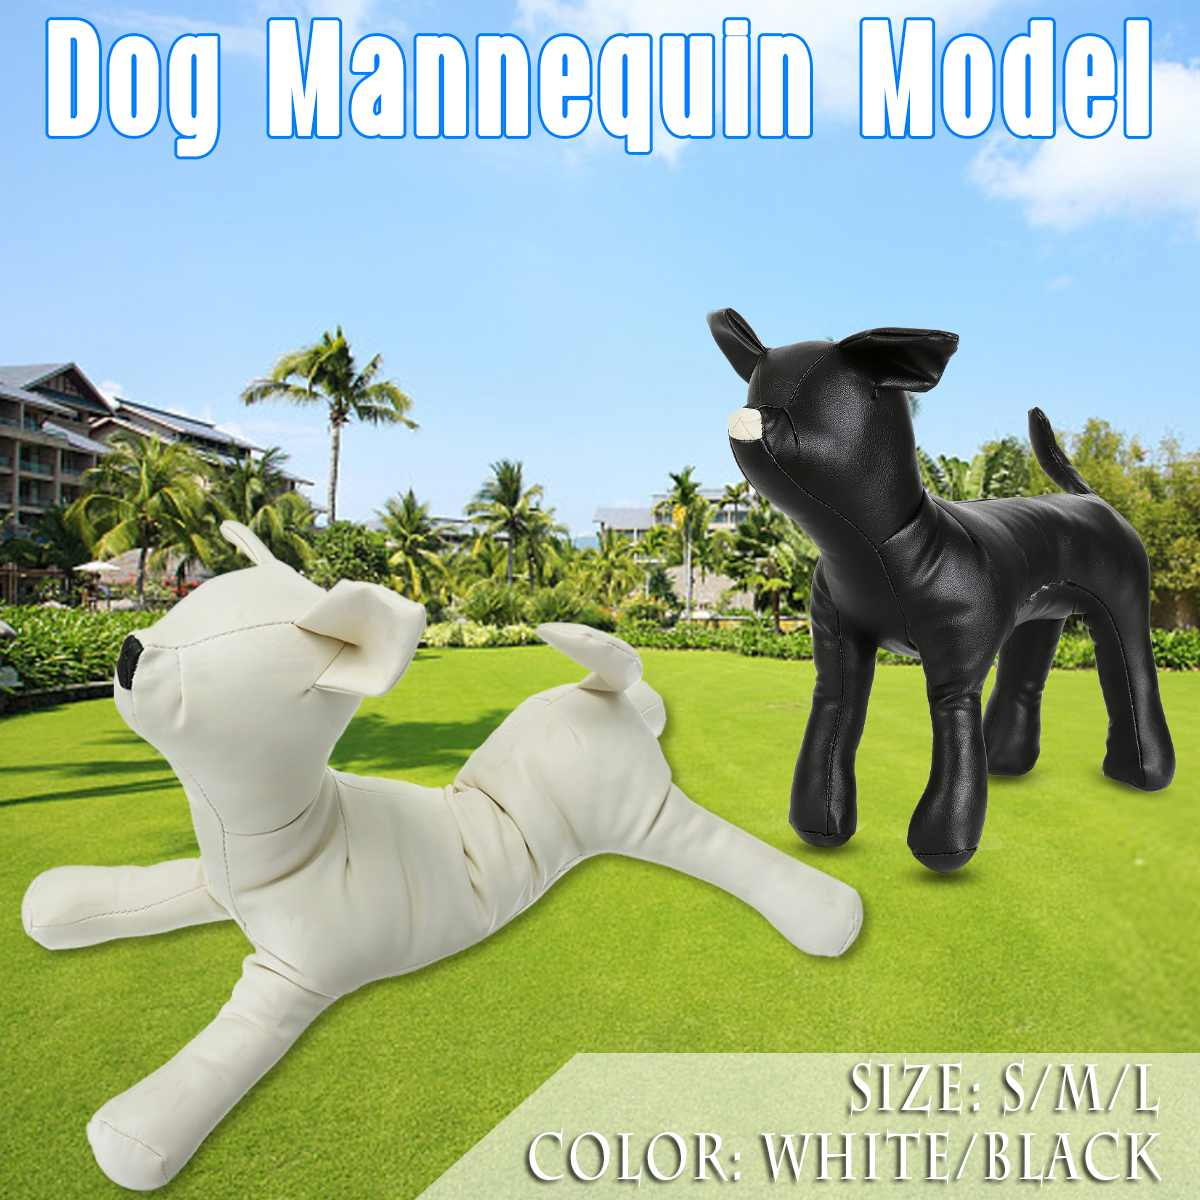 S/M/L PU Leather Dog Mannequin Model Apparel Clothing Display Standing Position 3 Size Toys Pet Animal Shop Display Legs Adjust